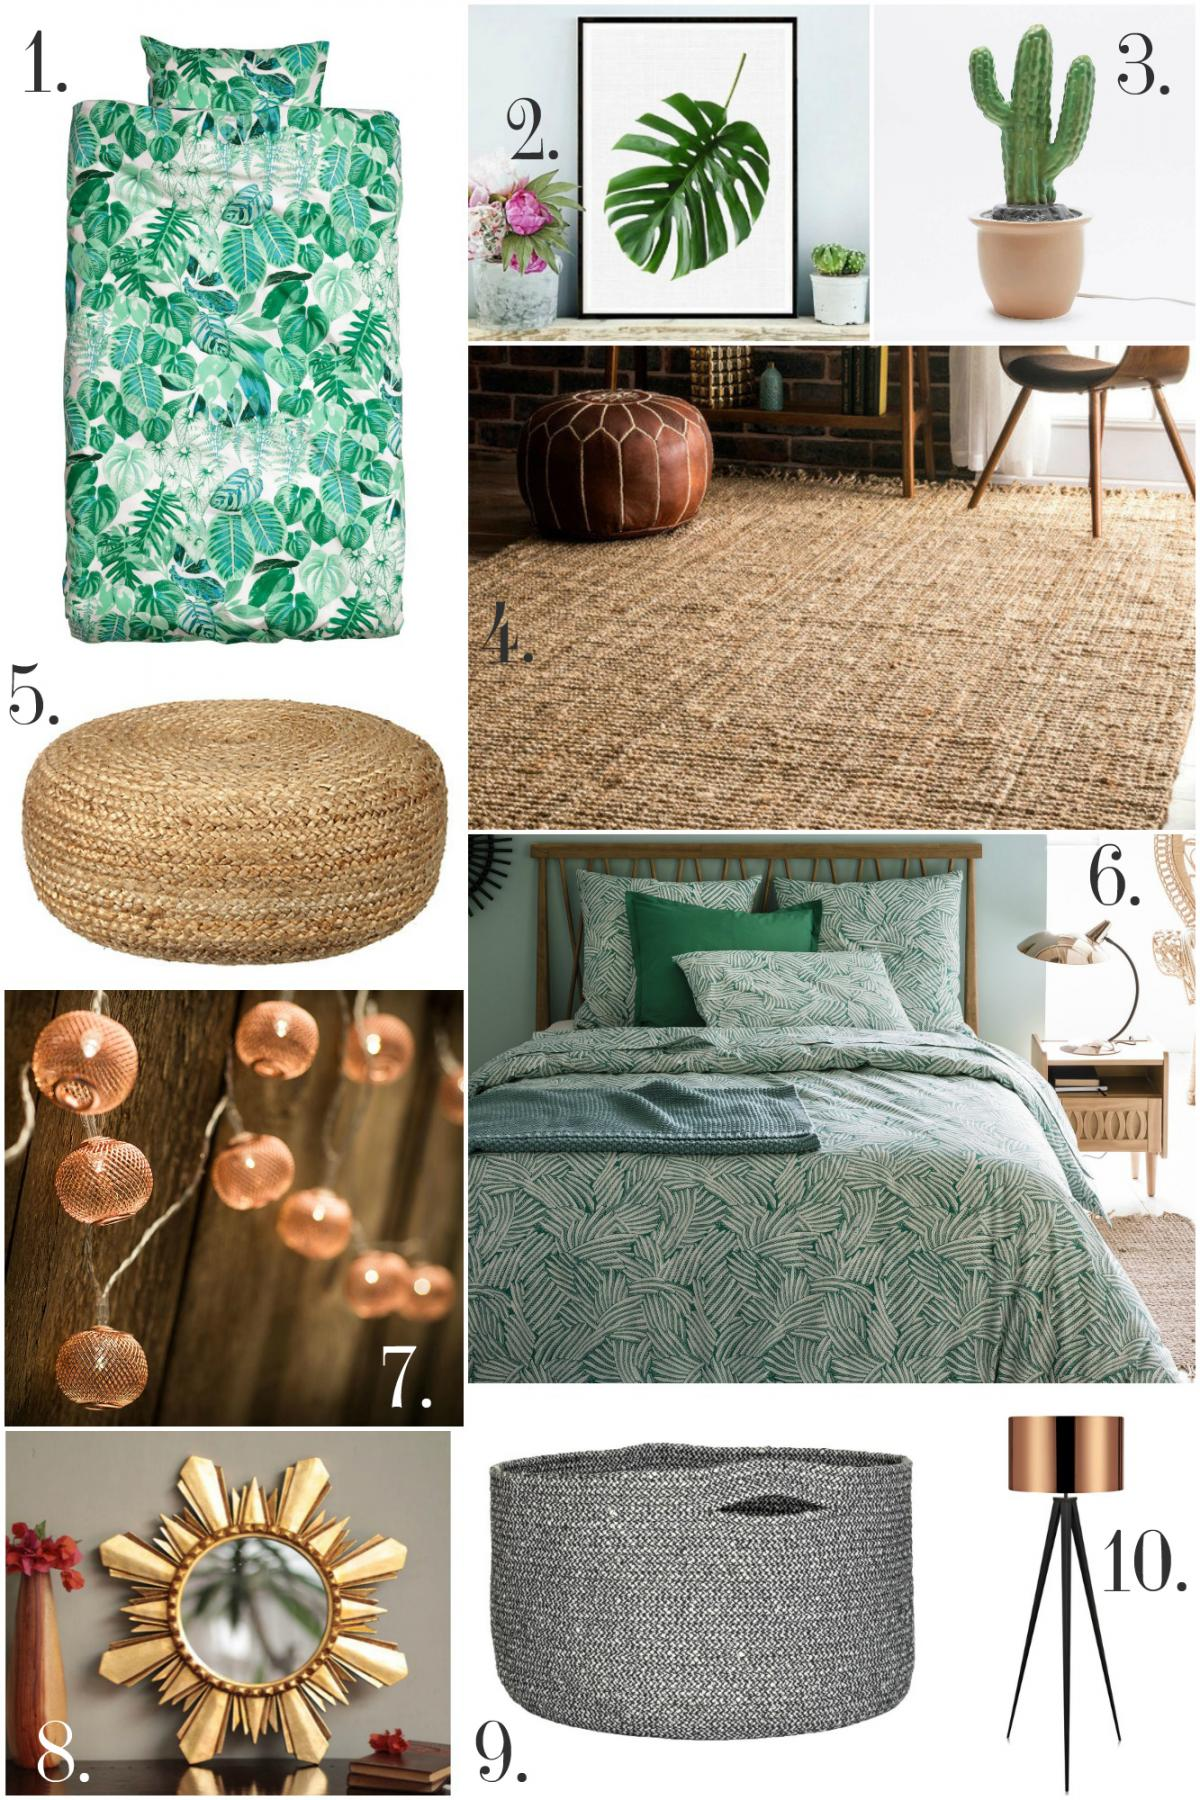 Home Trend- LA Cool Bedroom products